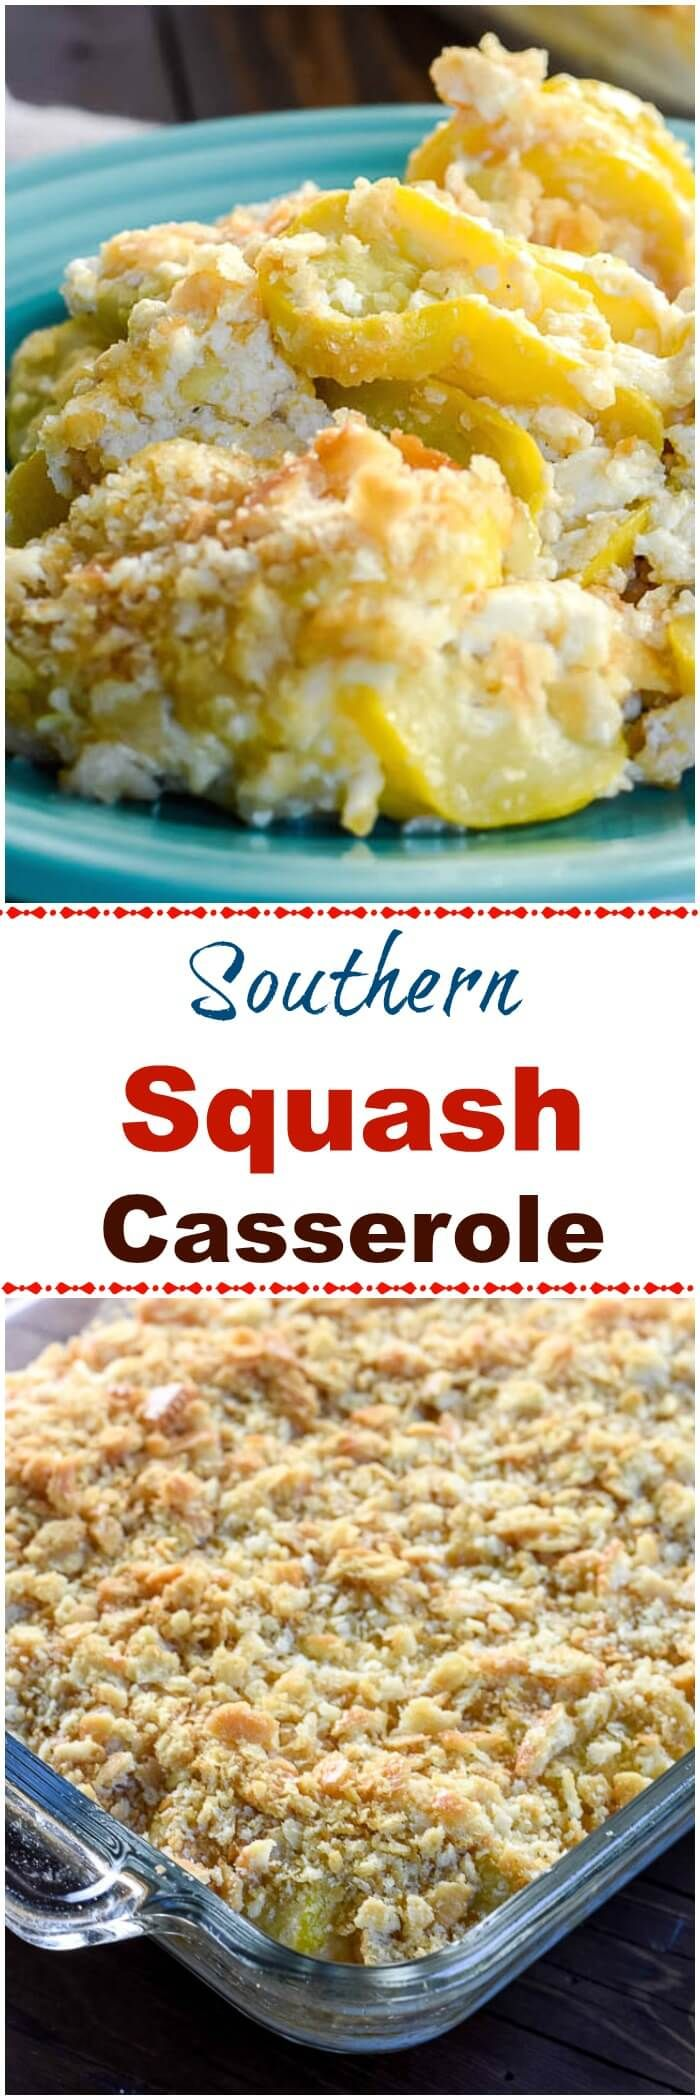 Southern Squash Casserole is a comforting side dish casserole, often served during the holidays, with tender, cooked yellow squash, onions,  sour cream and cheddar cheese topped with crushed buttery crackers. via @flavormosaic